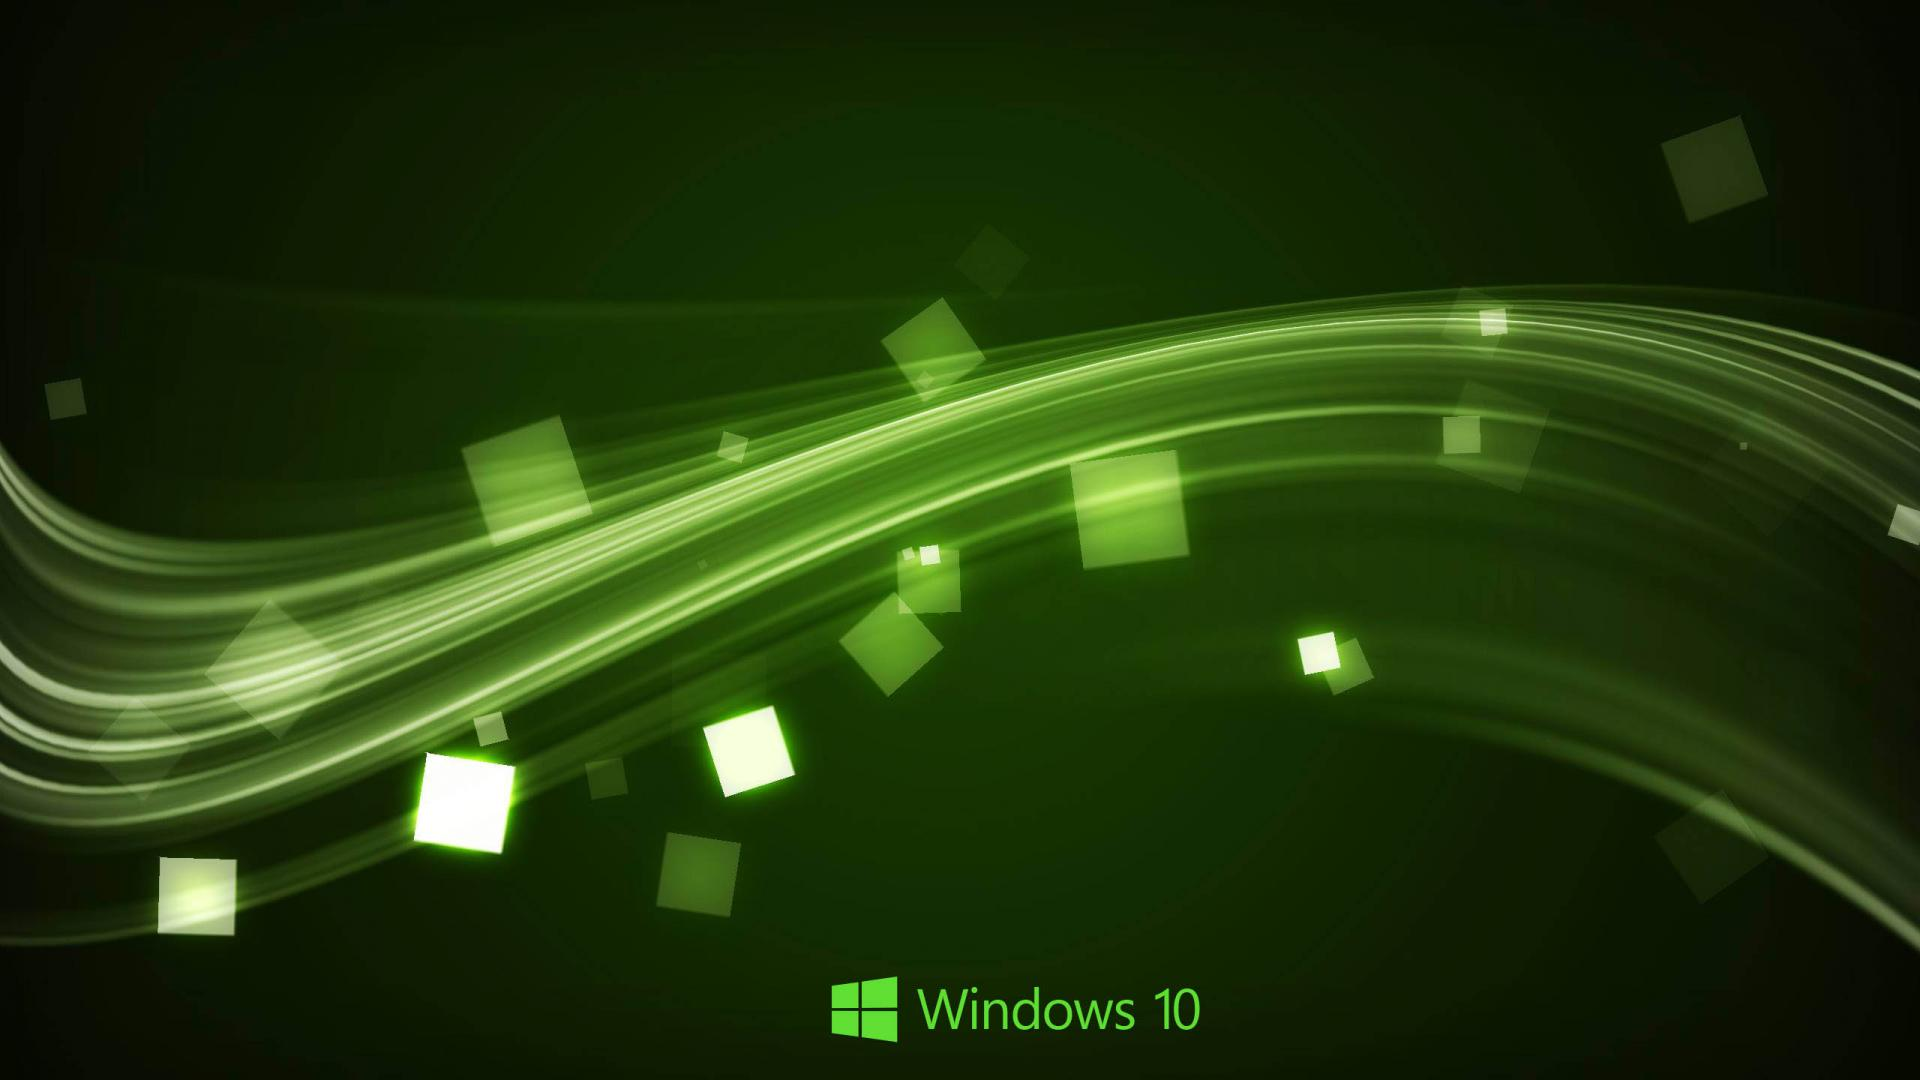 Windows 10 Wallpaper in Abstract Green Waves HD Wallpapers for 1920x1080